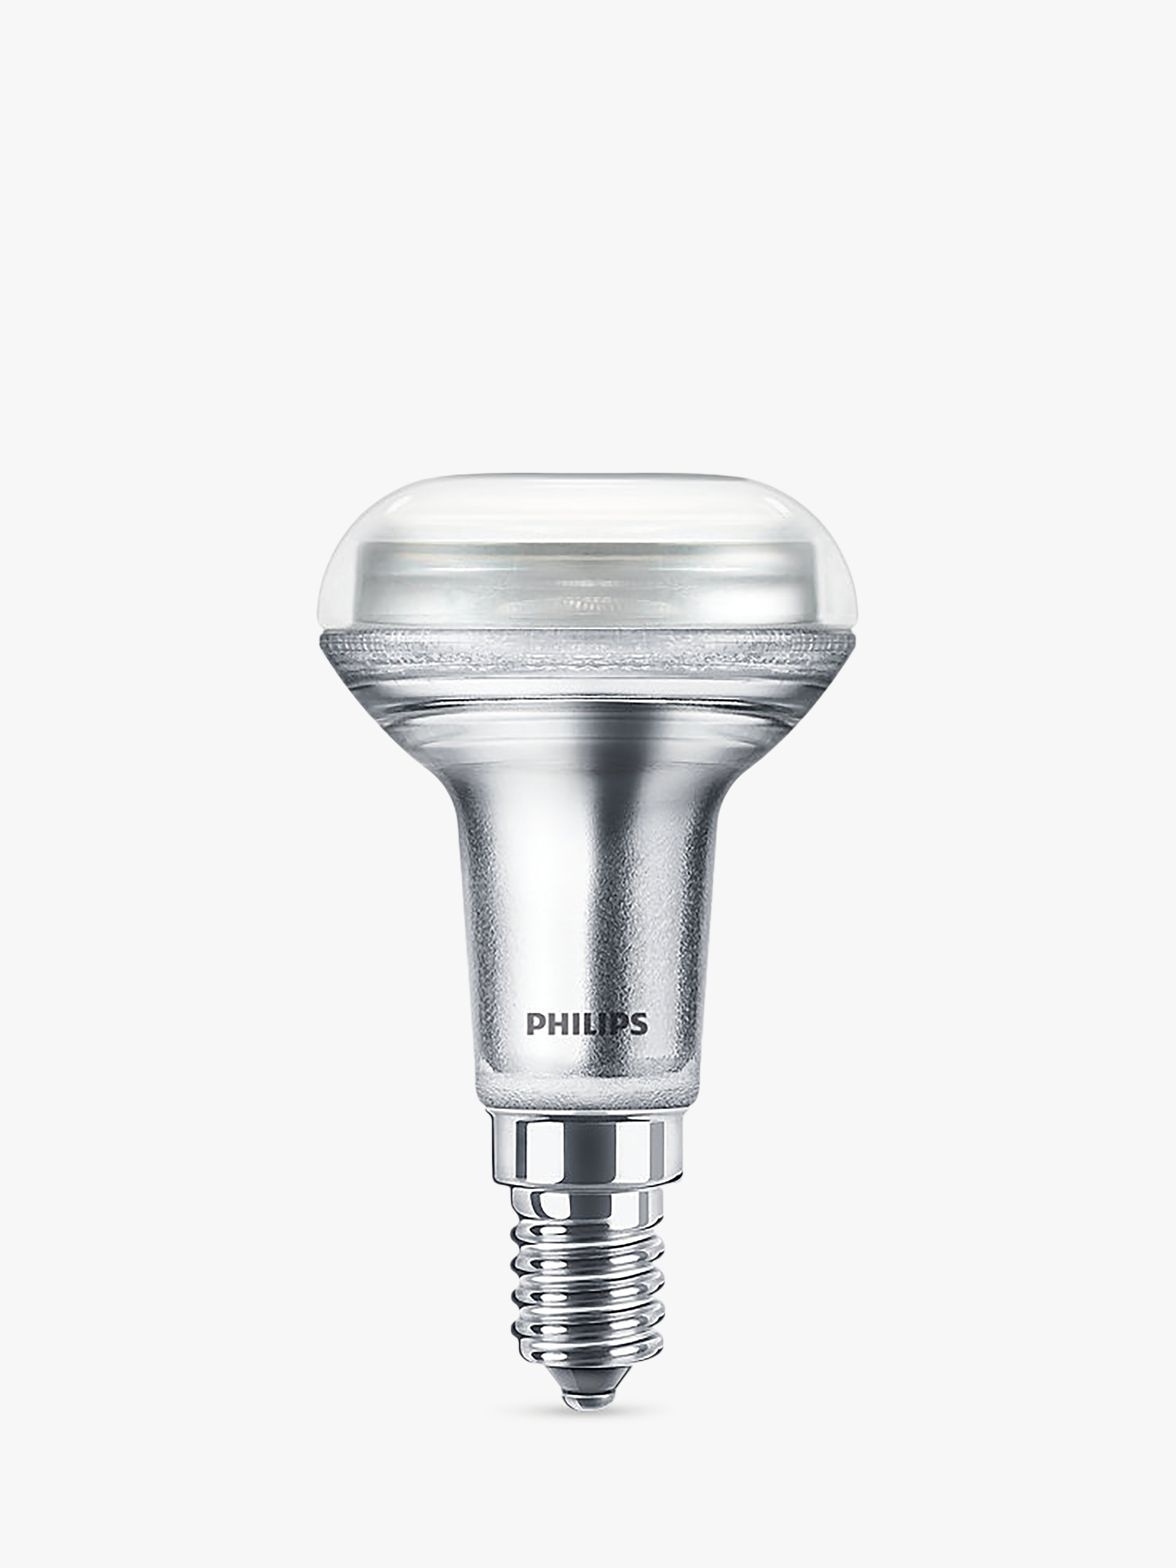 Philips Philips 2.8W SES LED Non Dimmable Reflector R50 Bulb, Warm White